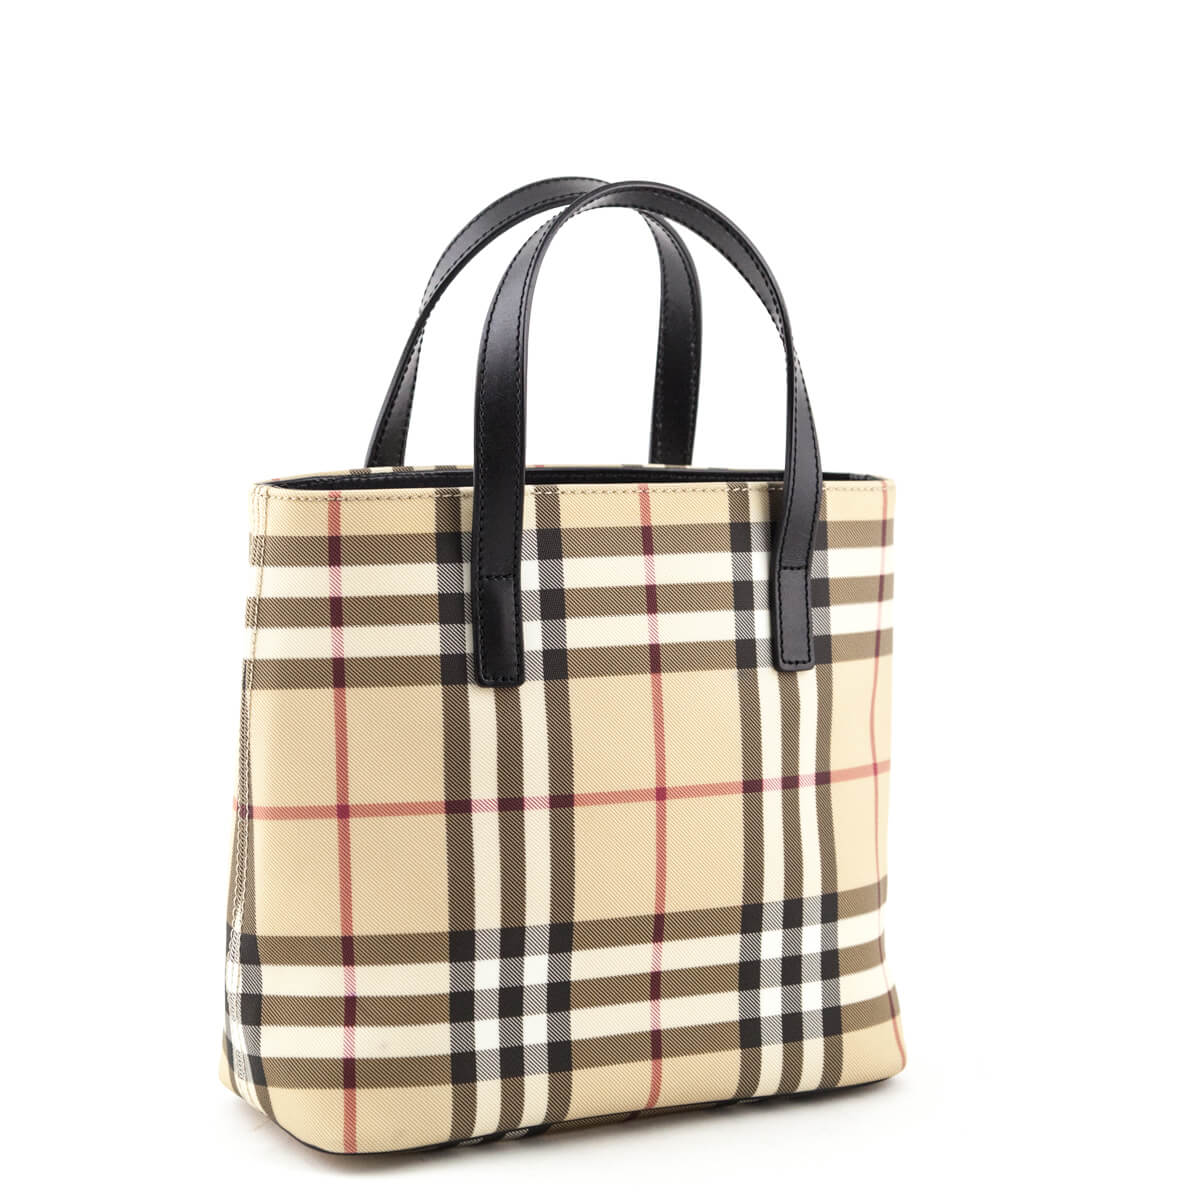 0b14225ed5 ... Burberry Nova Check Coated Canvas Small Tote Bag - LOVE that BAG -  Preowned Authentic Designer ...